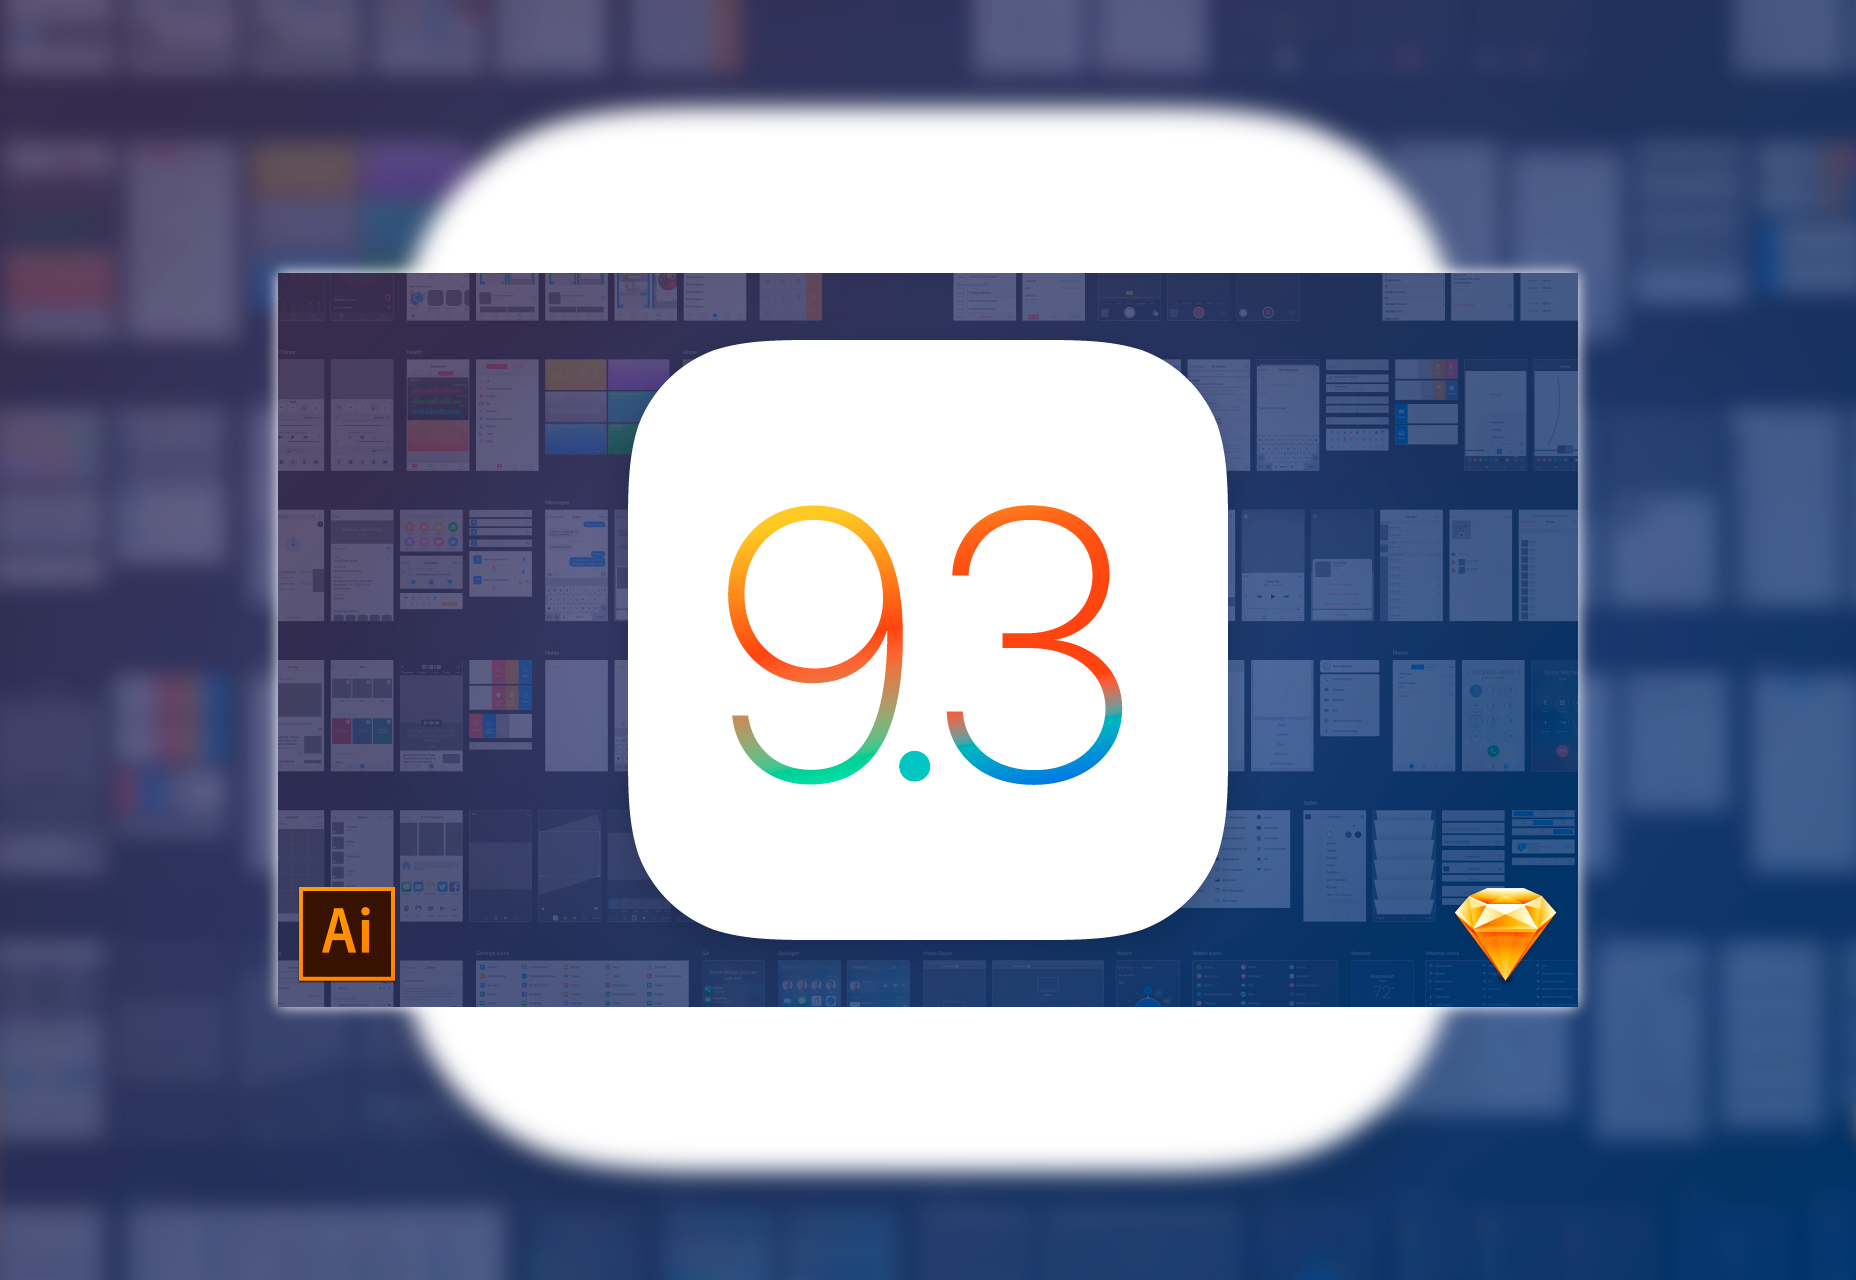 mercury-ios-93-sketch-ai-ui-kit